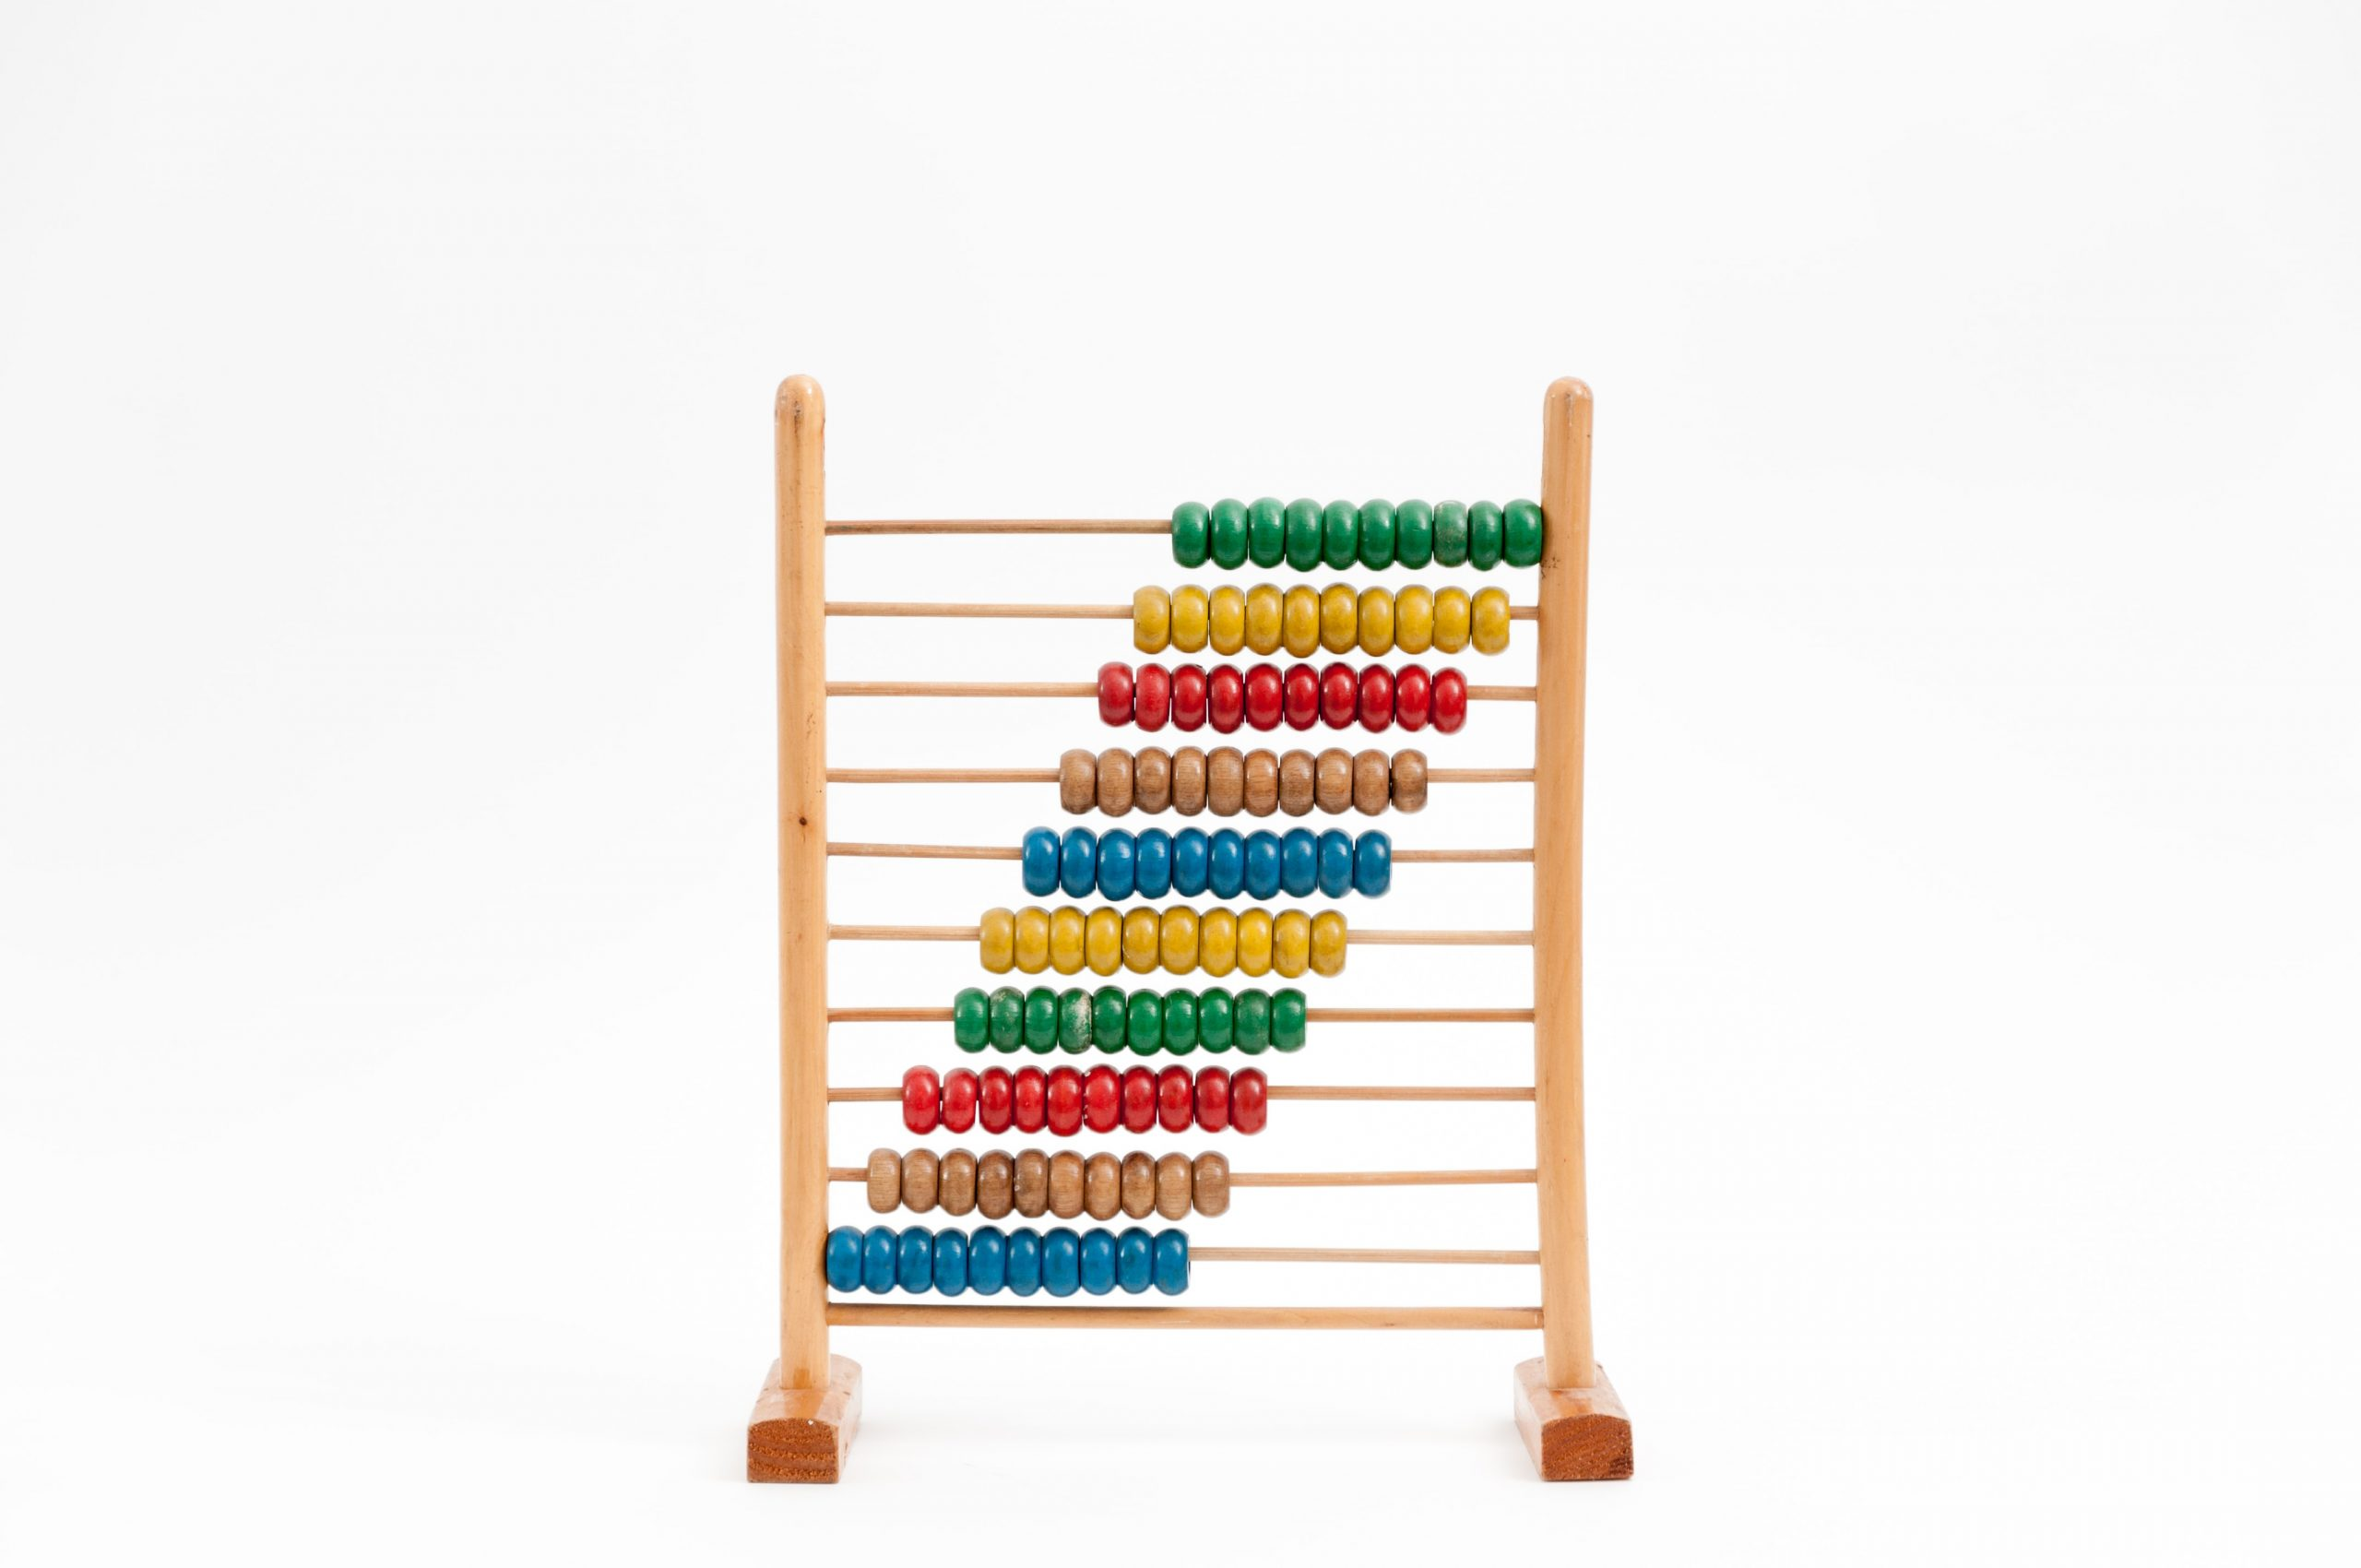 No joy like a well-ordered abacus. (Photo: Crissy Jarvis via Unsplash)